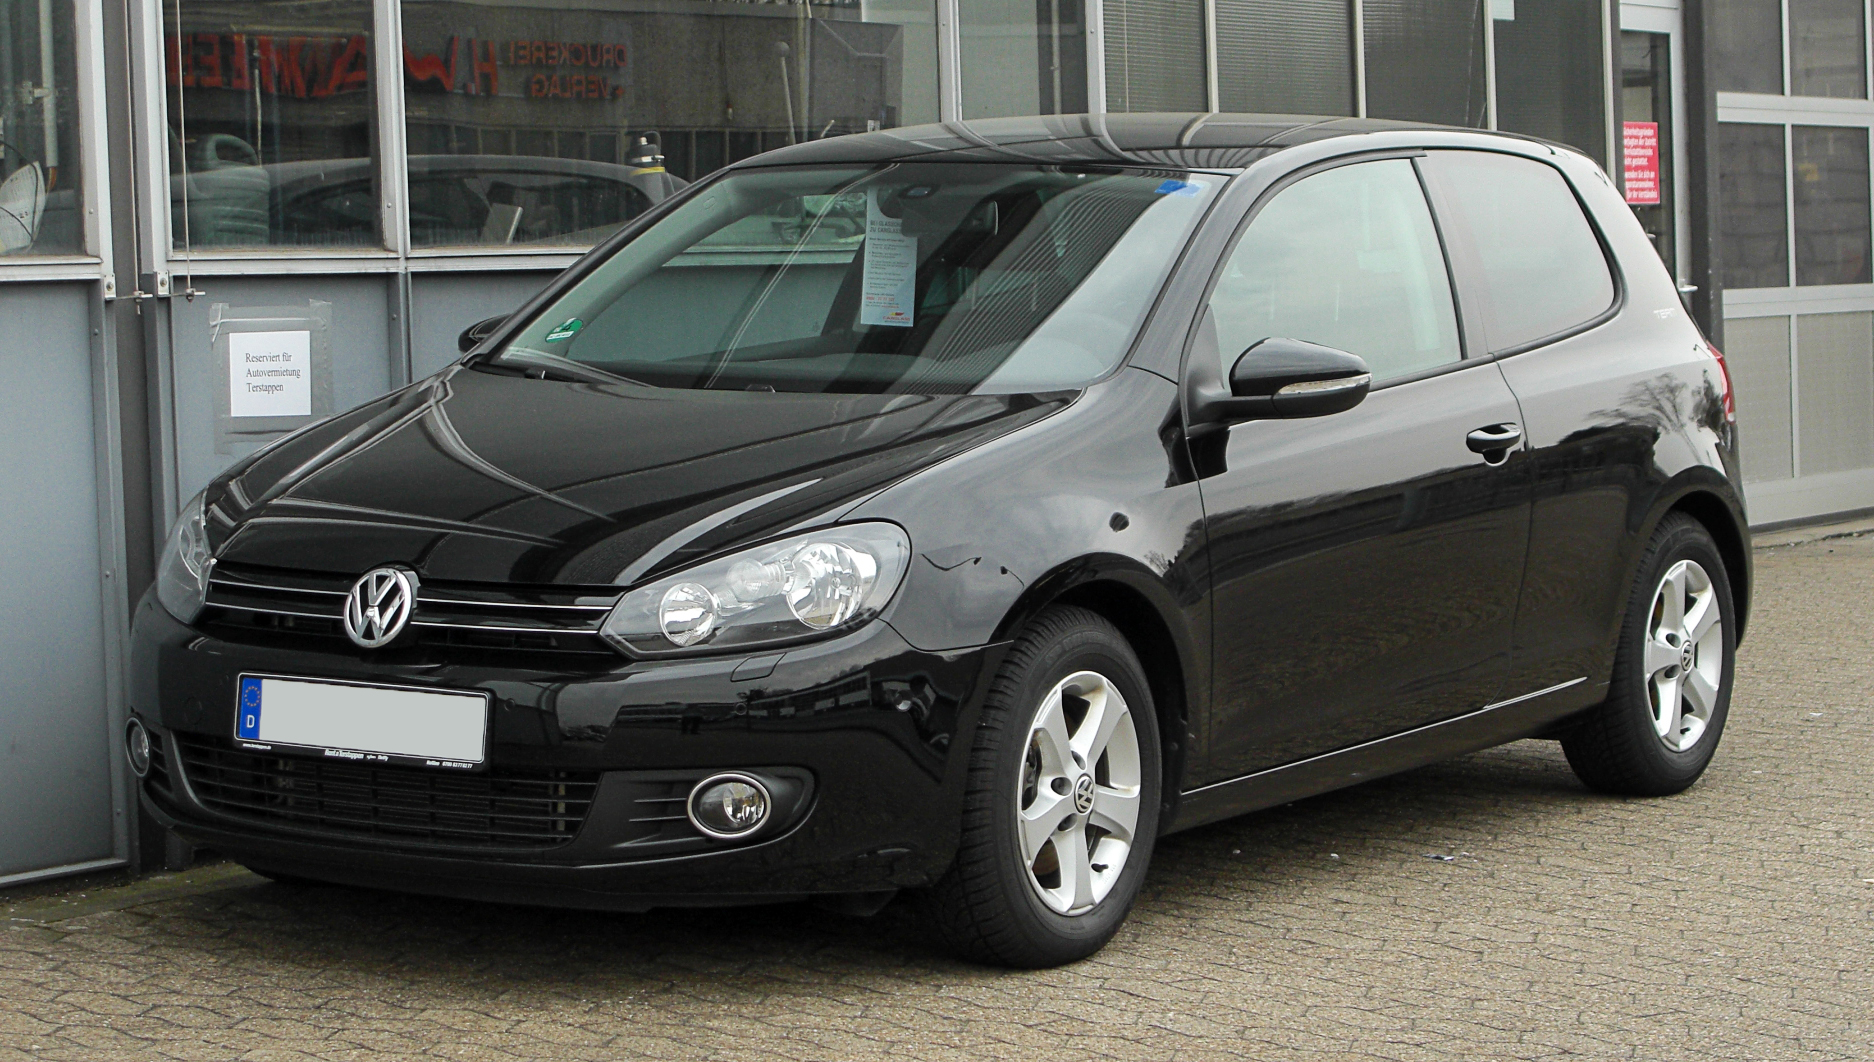 file vw golf 1 4 tsi team vi frontansicht 26 m rz 2011 wikimedia commons. Black Bedroom Furniture Sets. Home Design Ideas